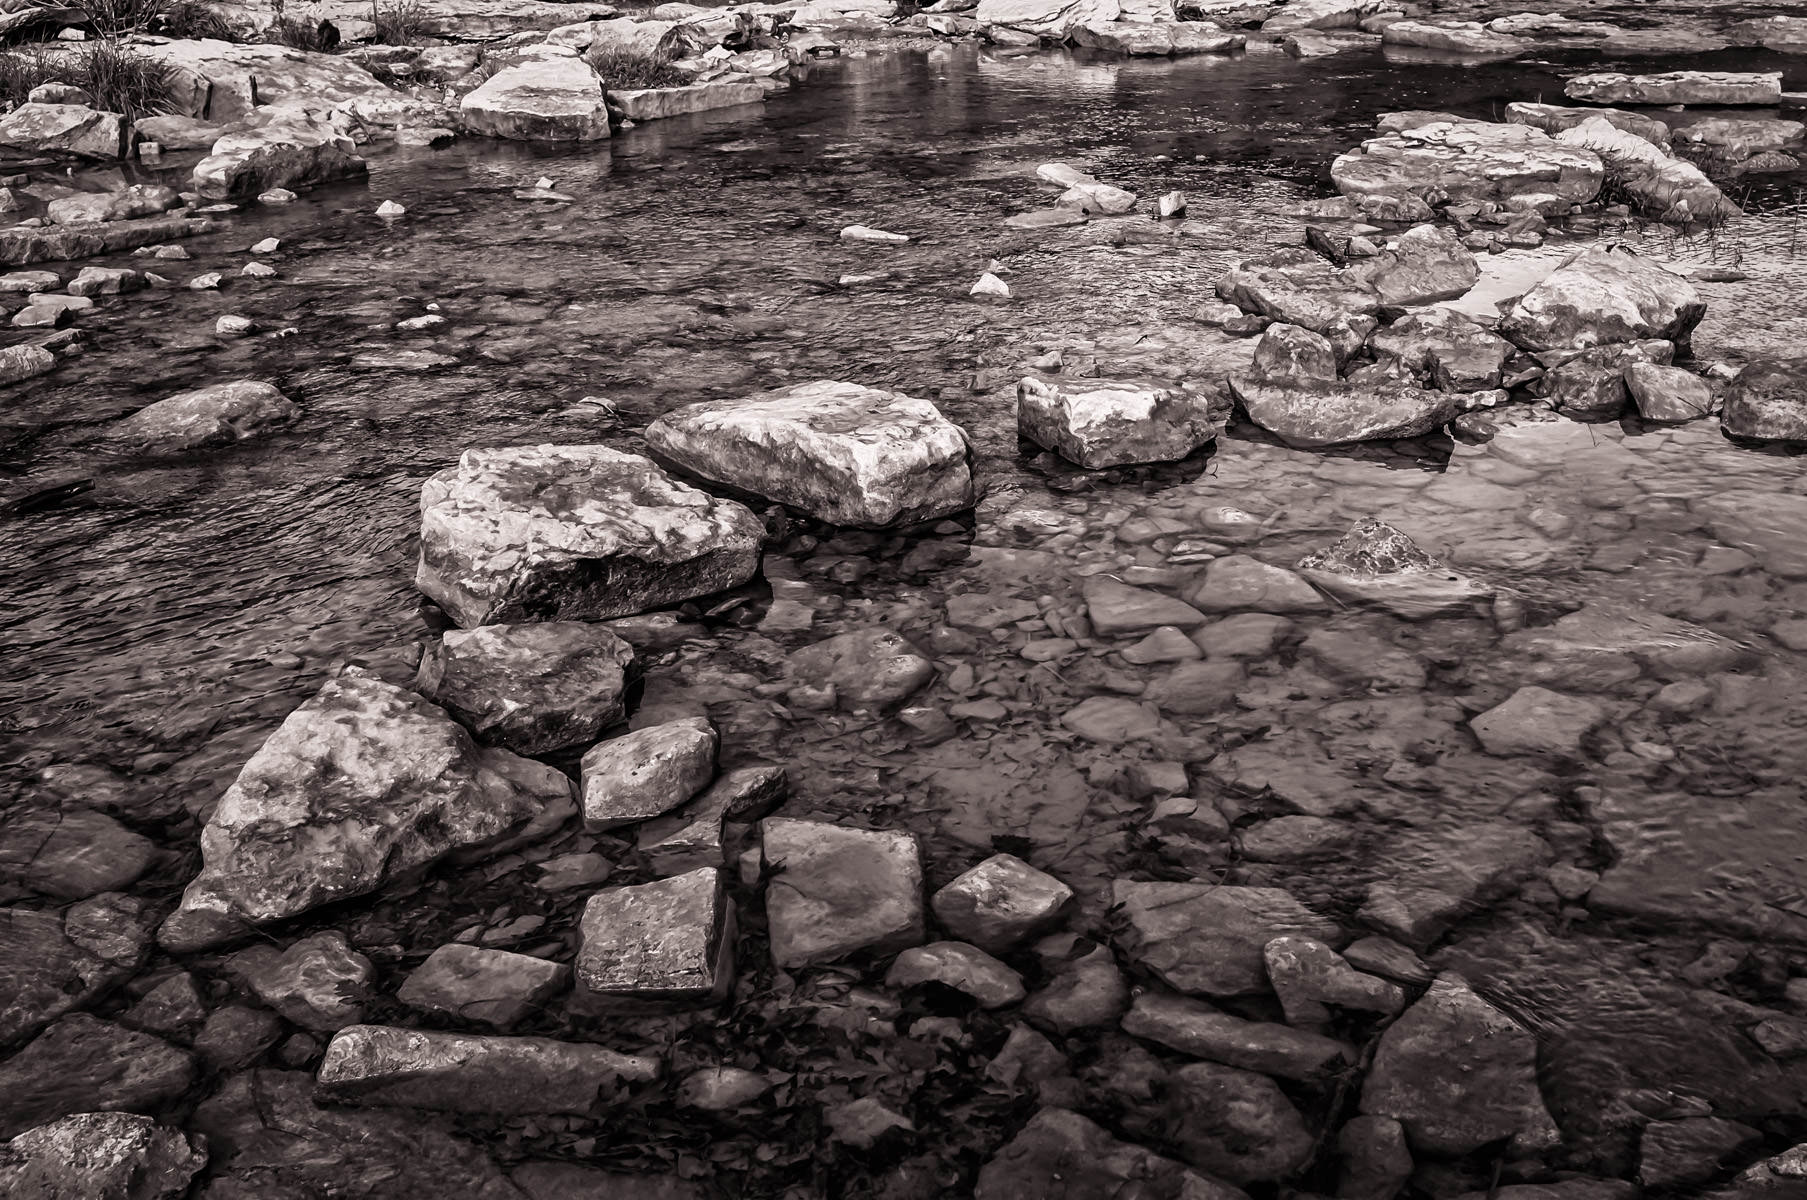 Texas' Paluxy River flows over and around rocks at Dinosaur Valley State Park.